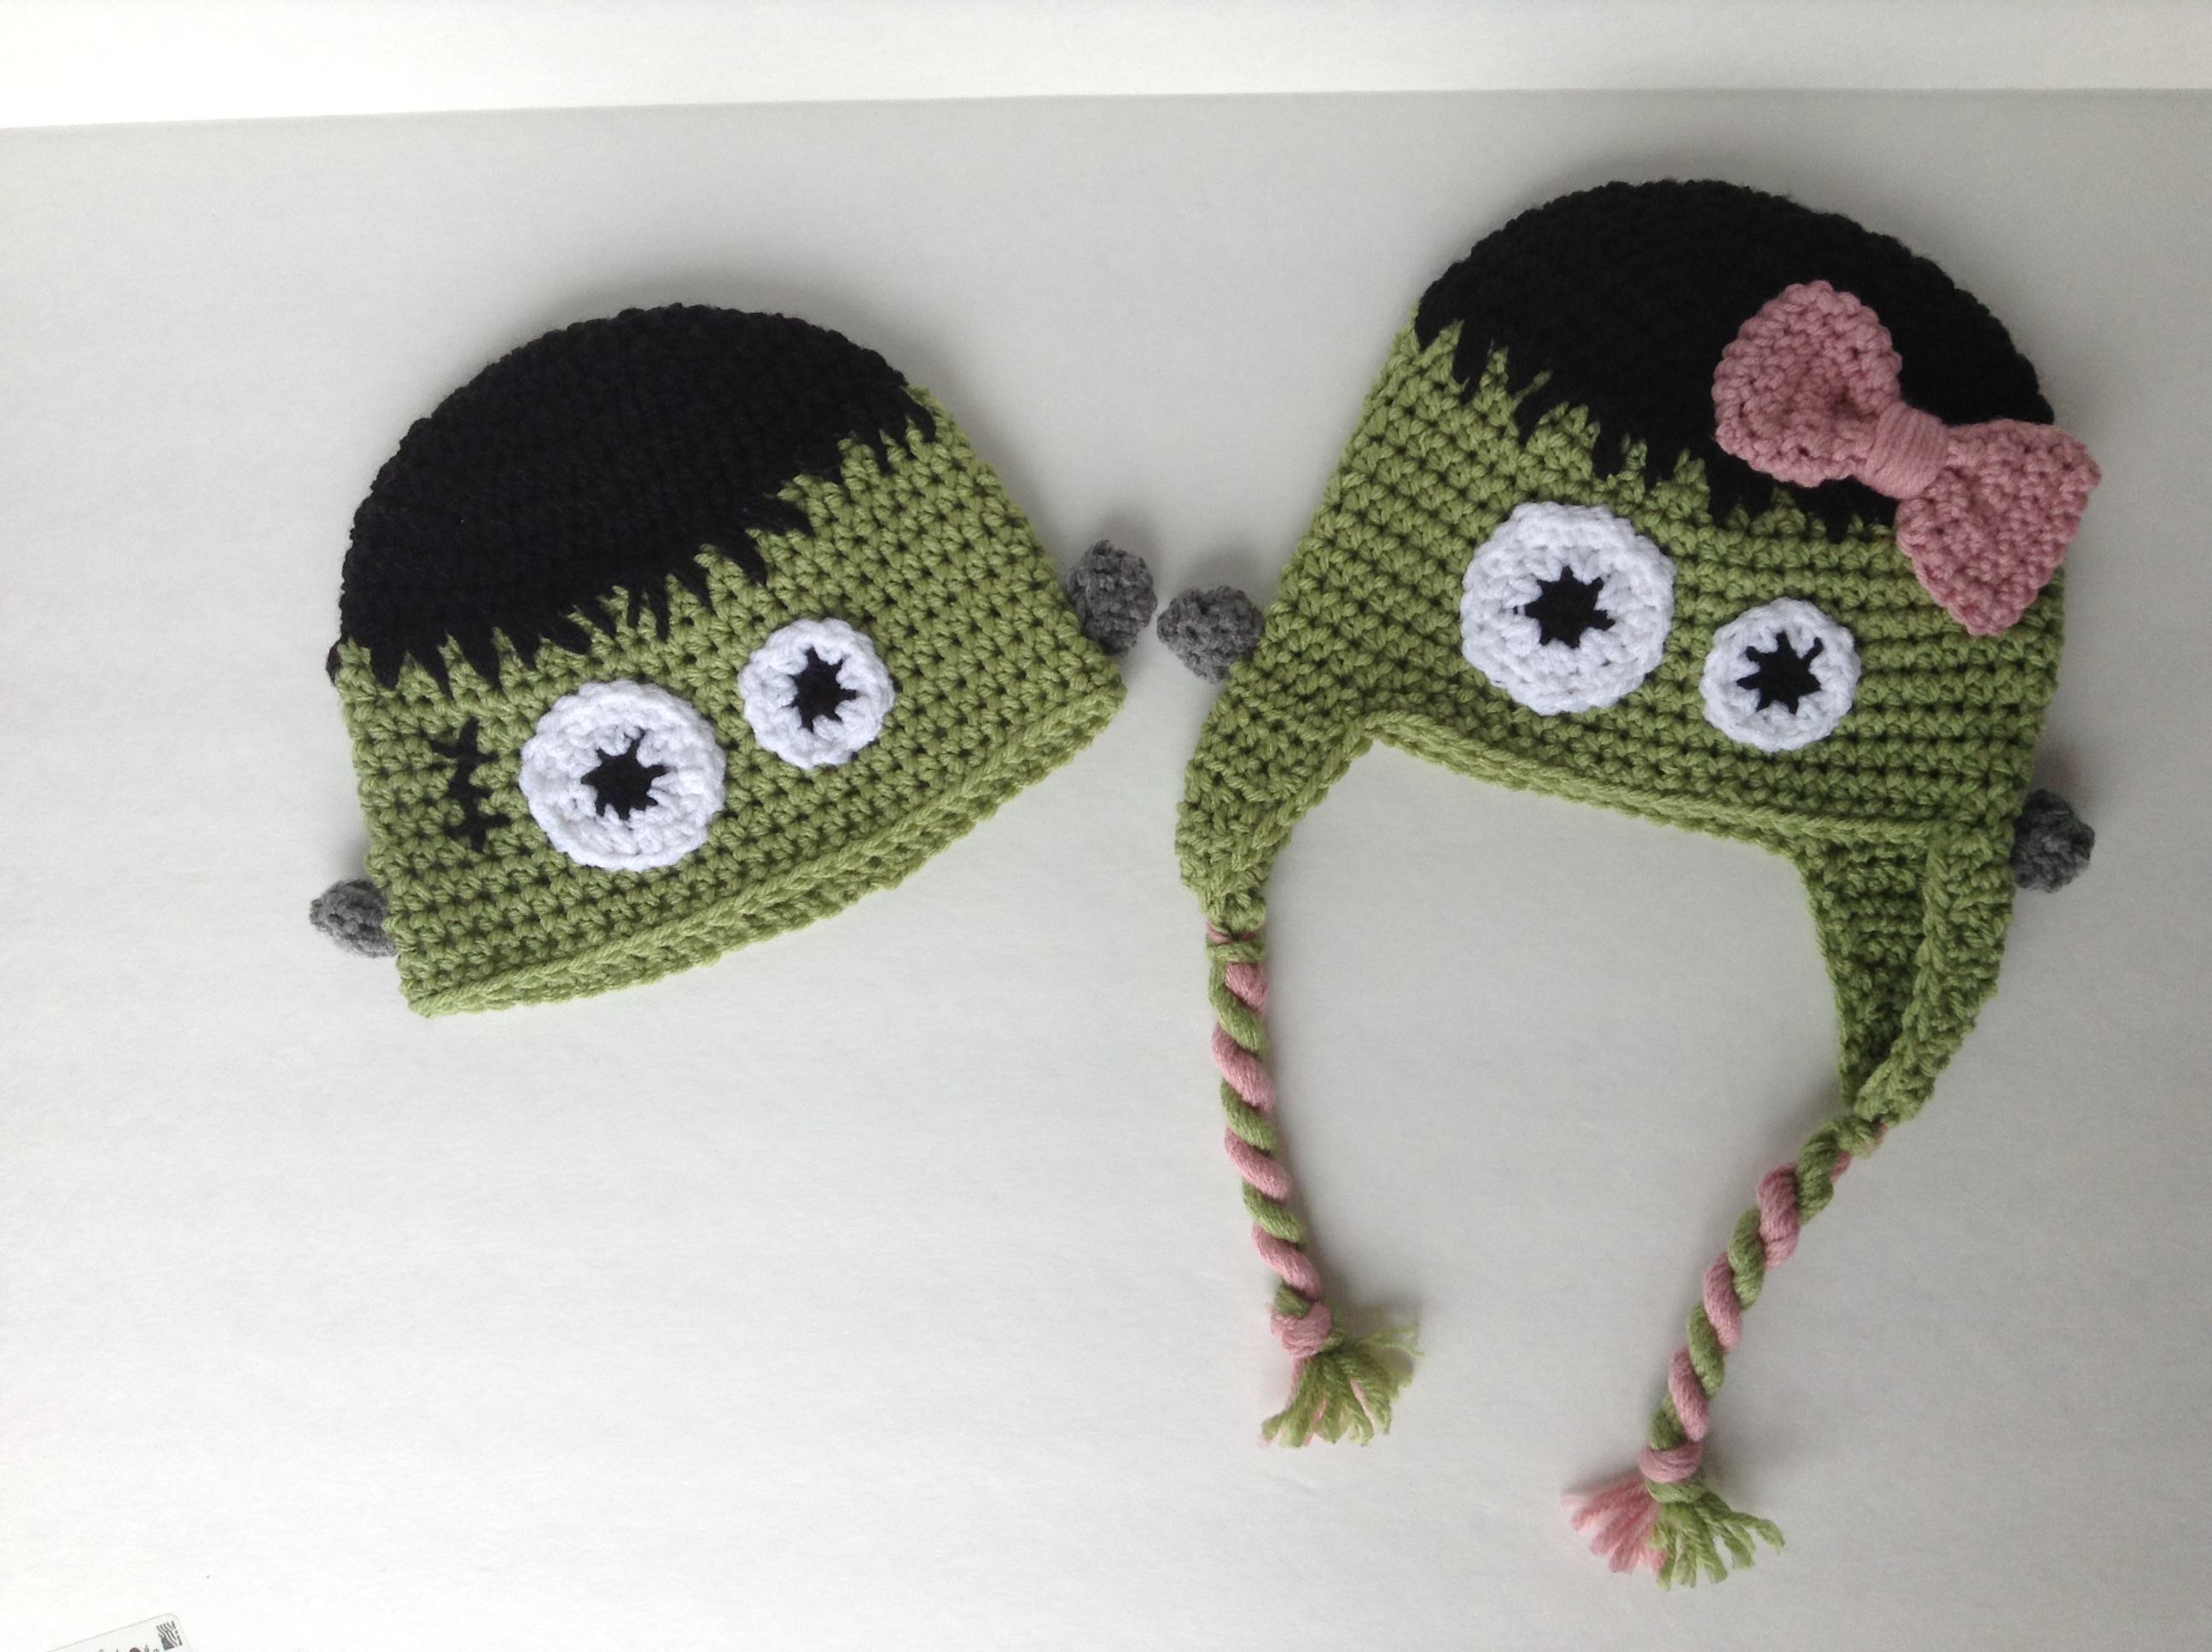 Free Crochet Patterns For Character Hats : Gallery For > Crochet Character Hat